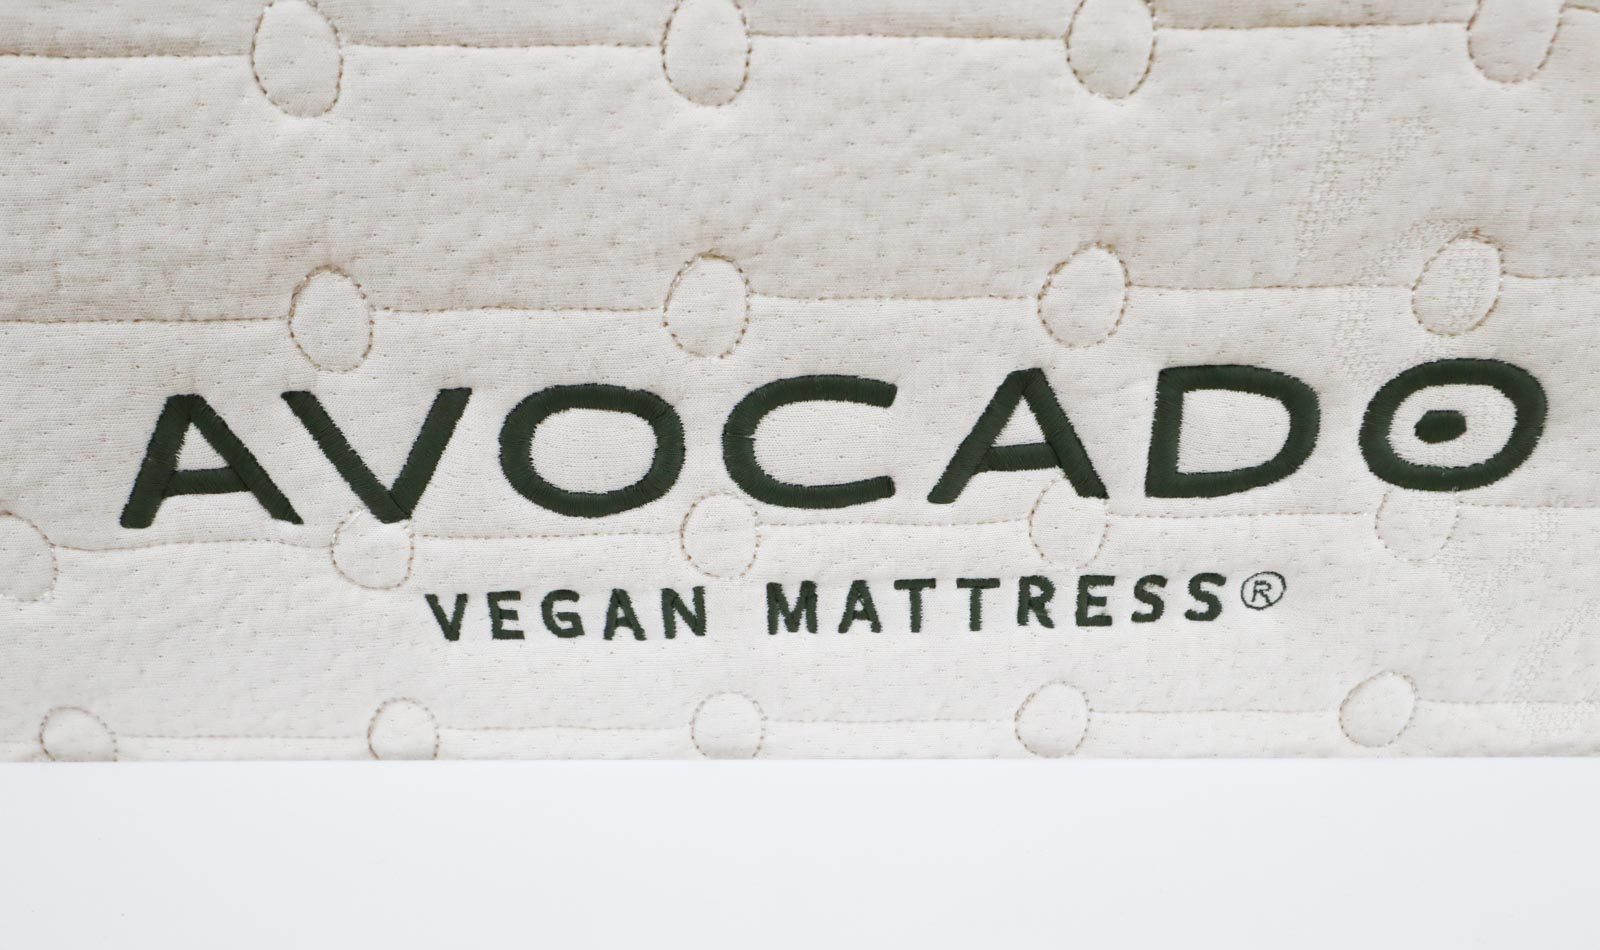 A close up picture of the Avocado Vegan Mattress label on a mattress.